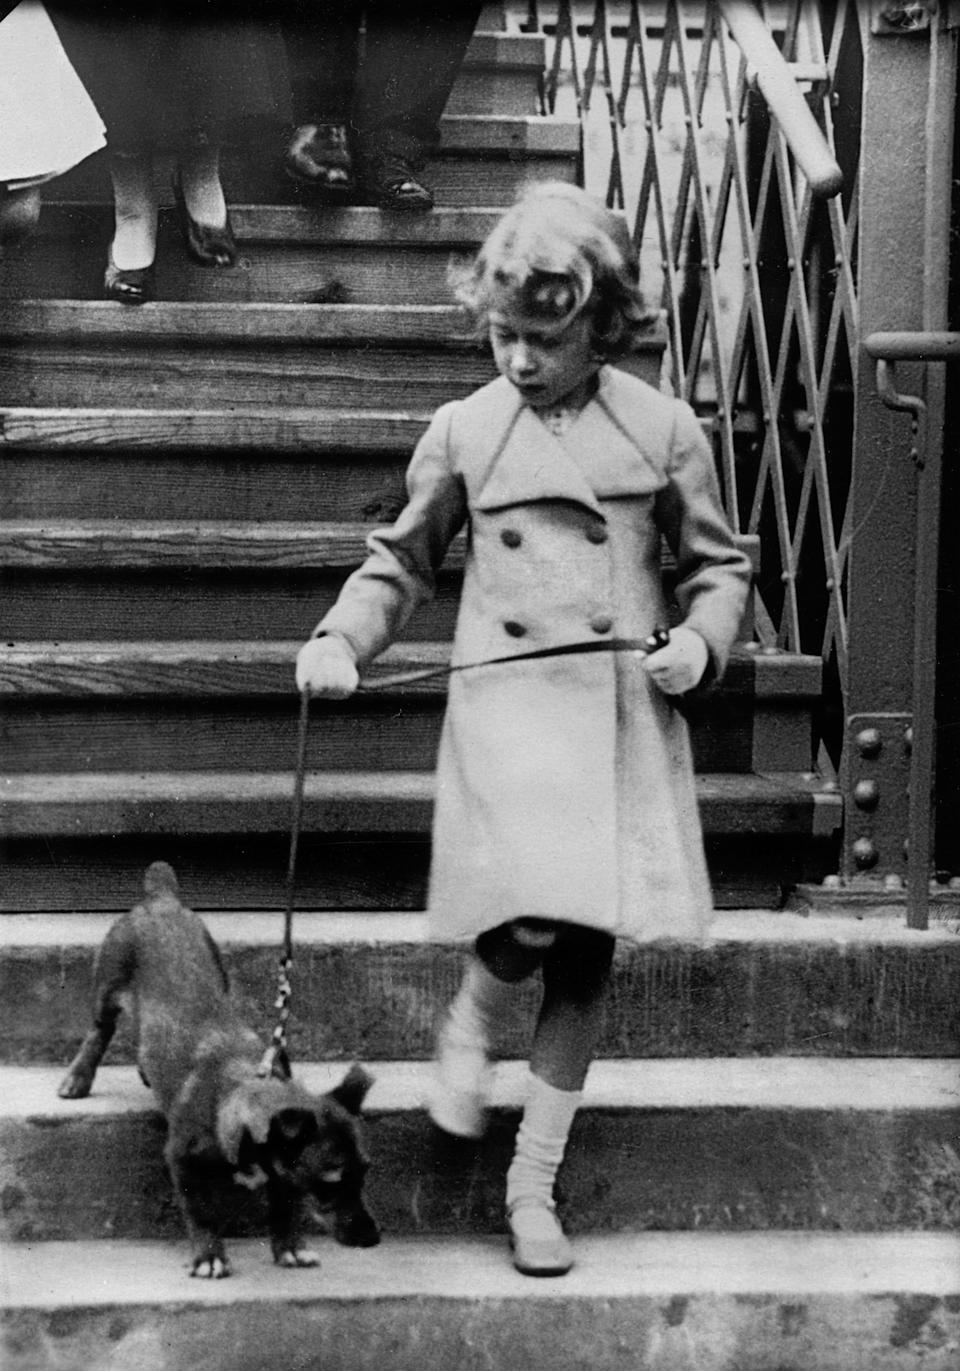 A five-year-old Queen took her dog for a walk in 1931 (Getty Images)